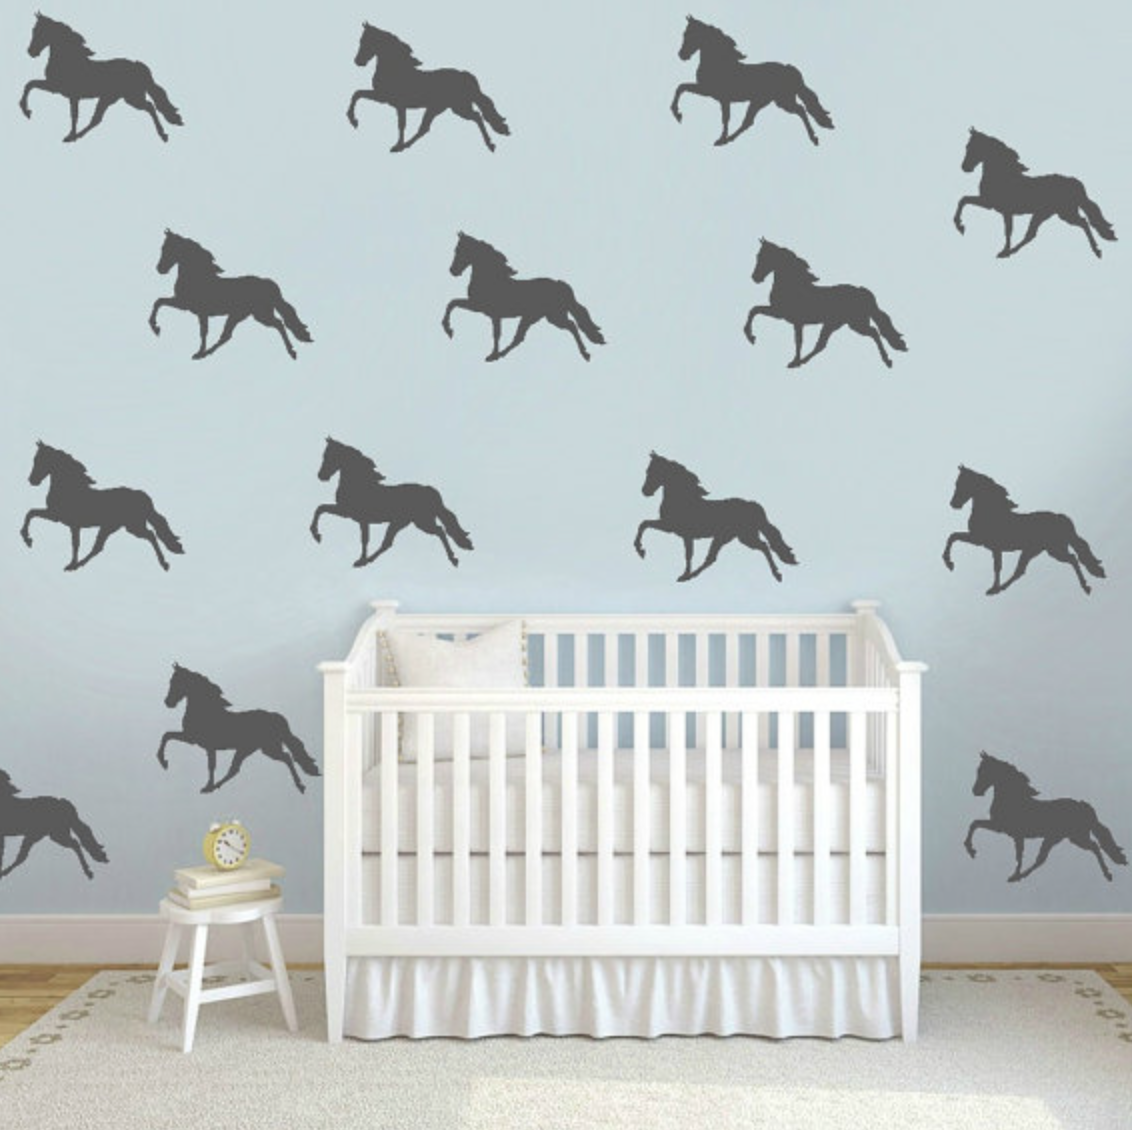 Ways To Dress Up Your Walls With Vinyl Decals Horses Heels - Wall decals horses